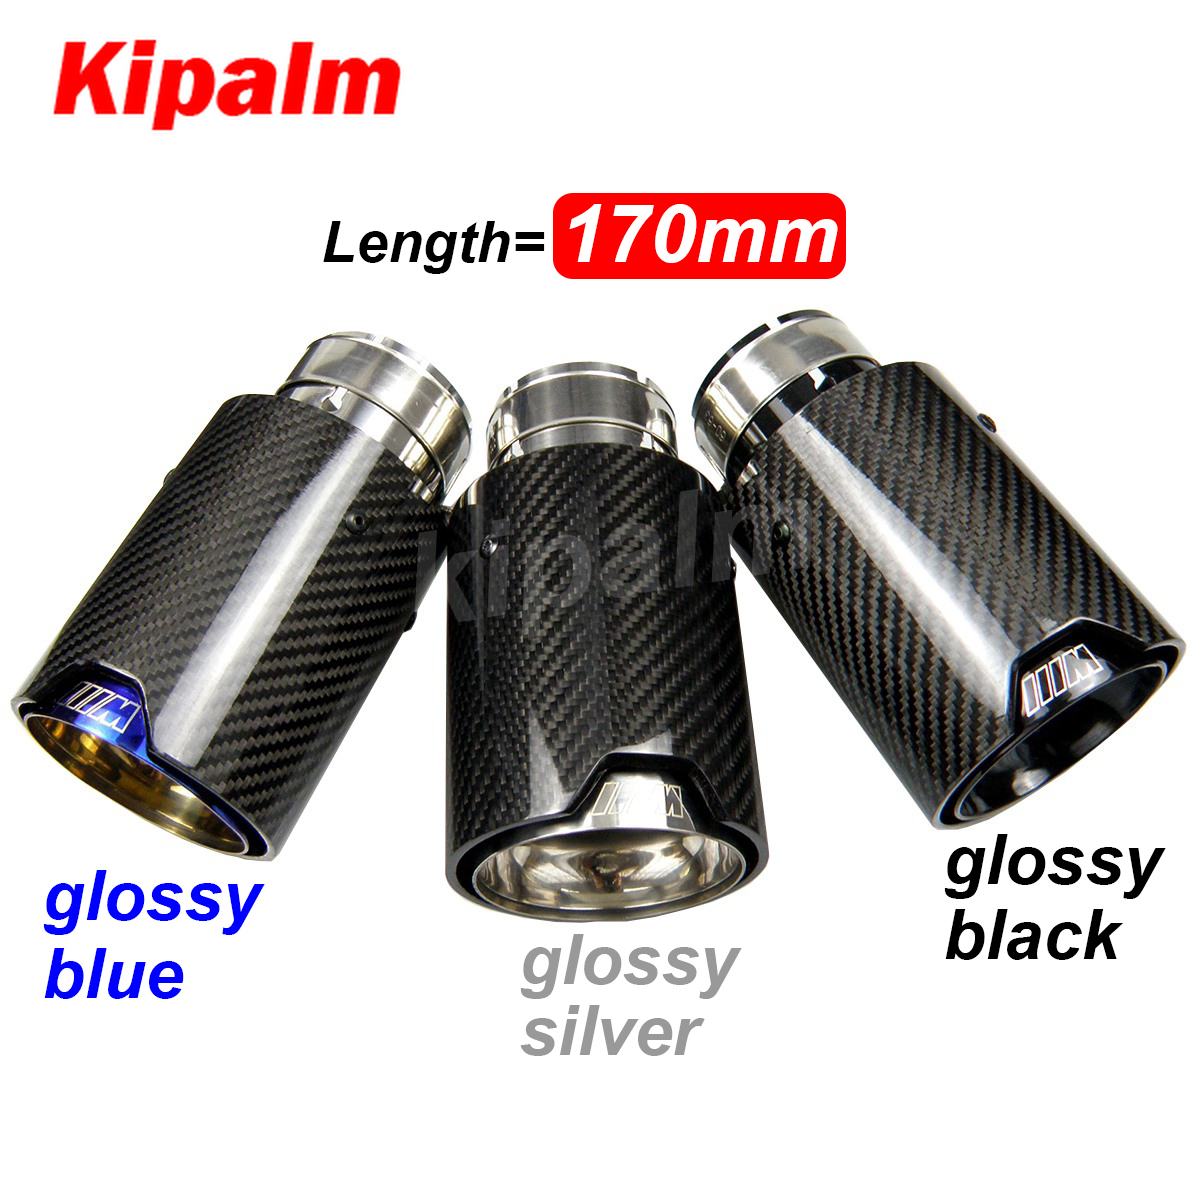 universal m logo carbon fiber exhaust tips for m performance exhaust pipe for bmw muffler tail pipe 170mm length m3 m4 m5